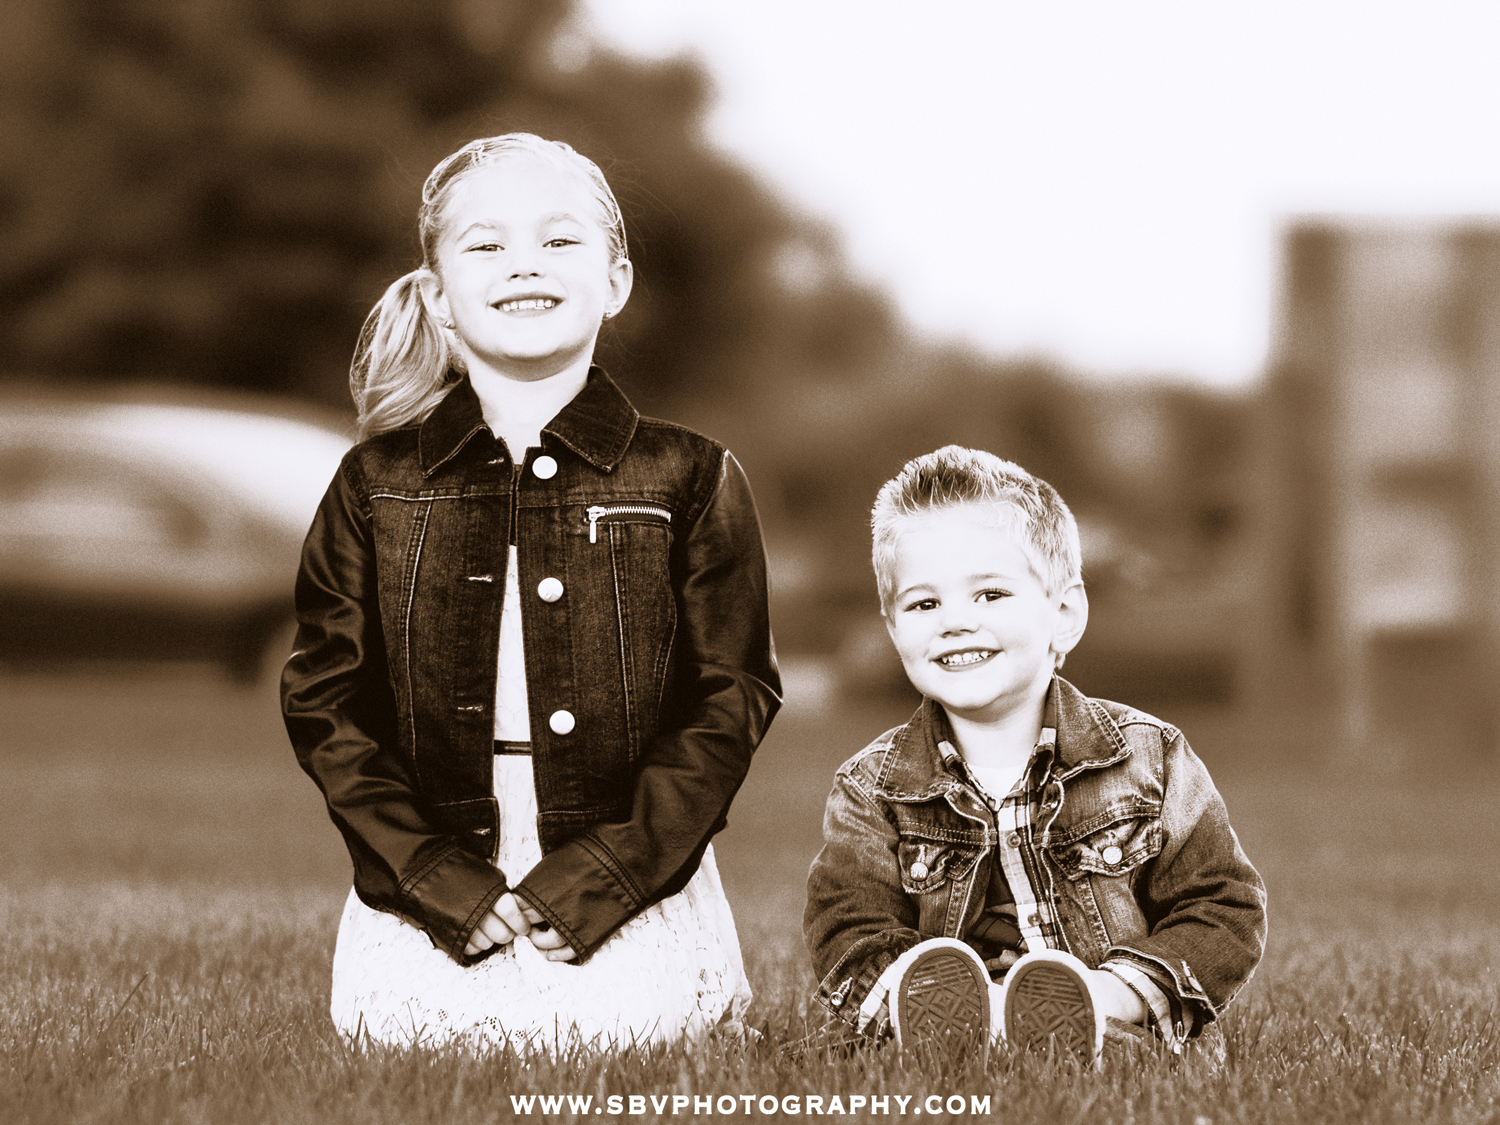 A sepia toned children's portrait of a brother and sister at a Northwest Indiana park during the Fall season.